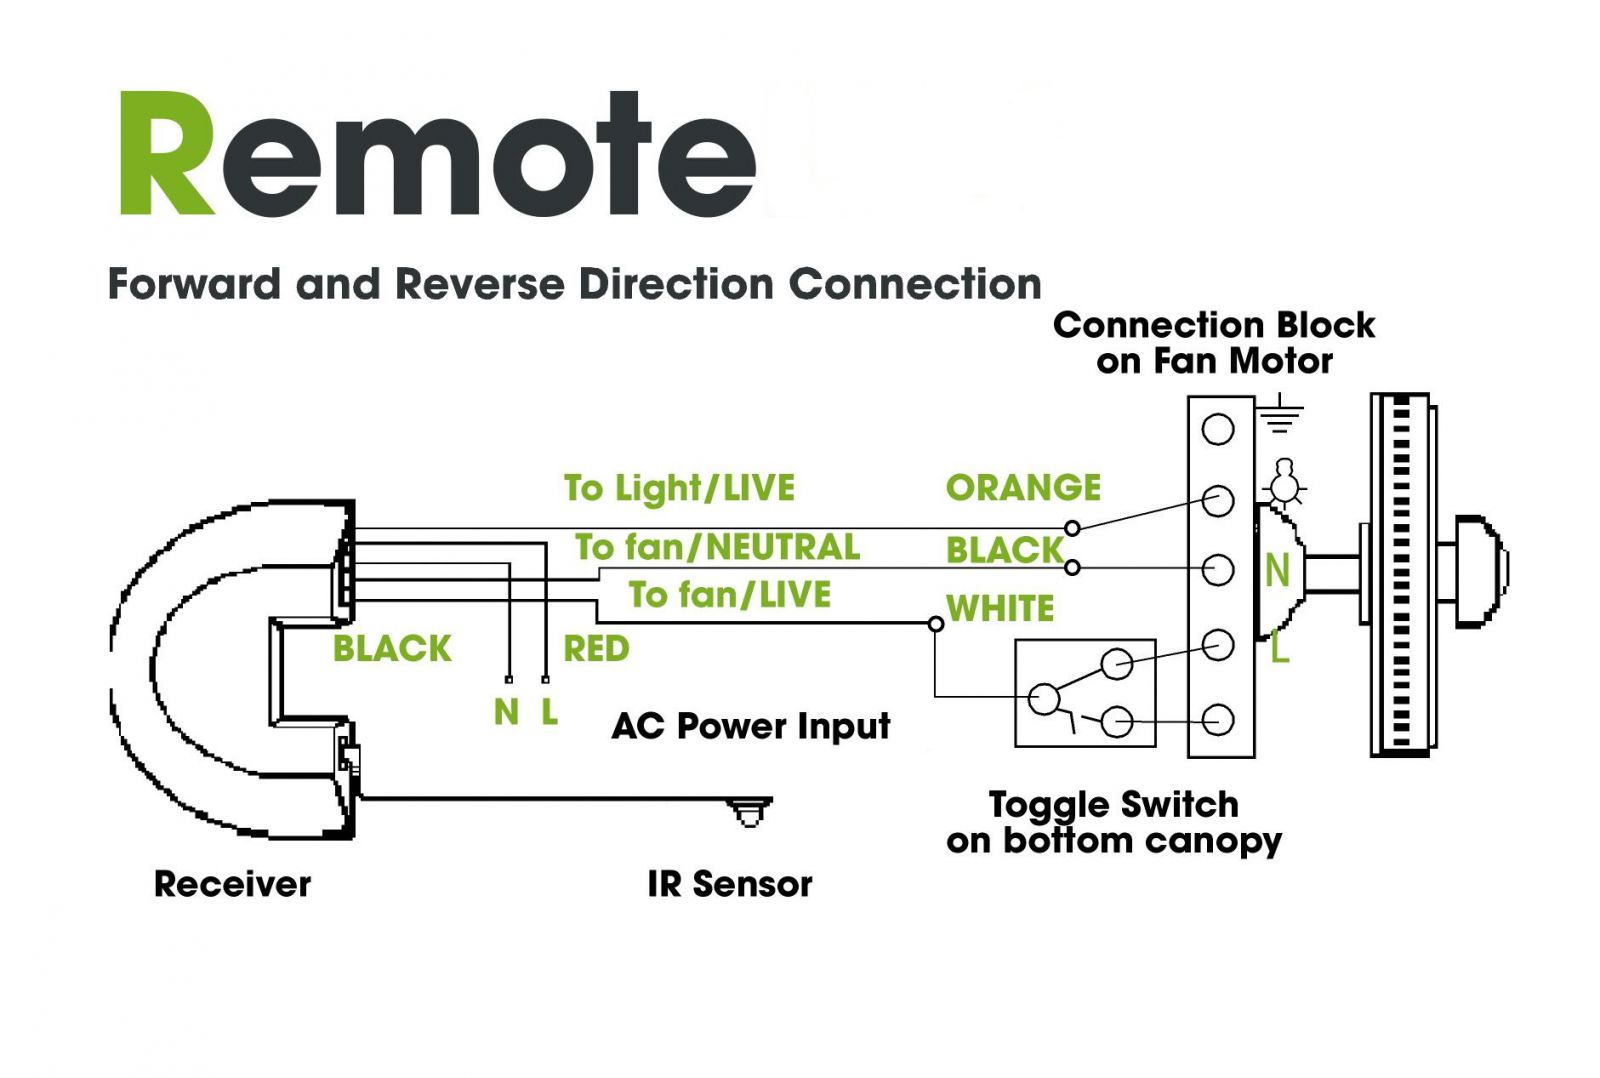 Reversible Ceiling Fan Motor Wiring Ac Blower Diagram Sd Picture High Starter